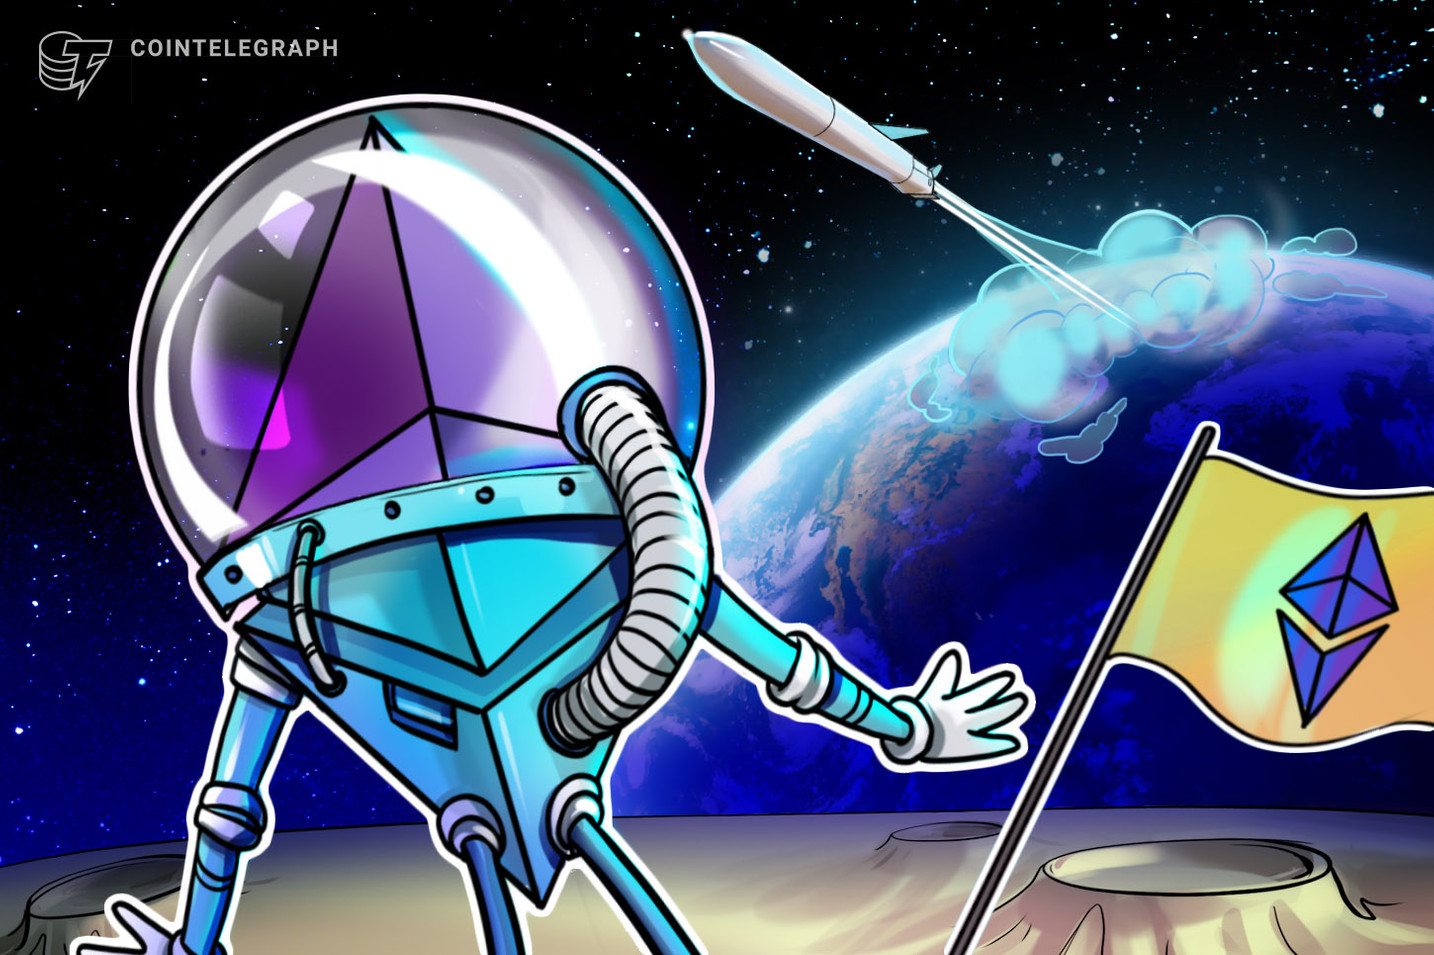 Ethereum surges past $730: What comes next after the massive rally?